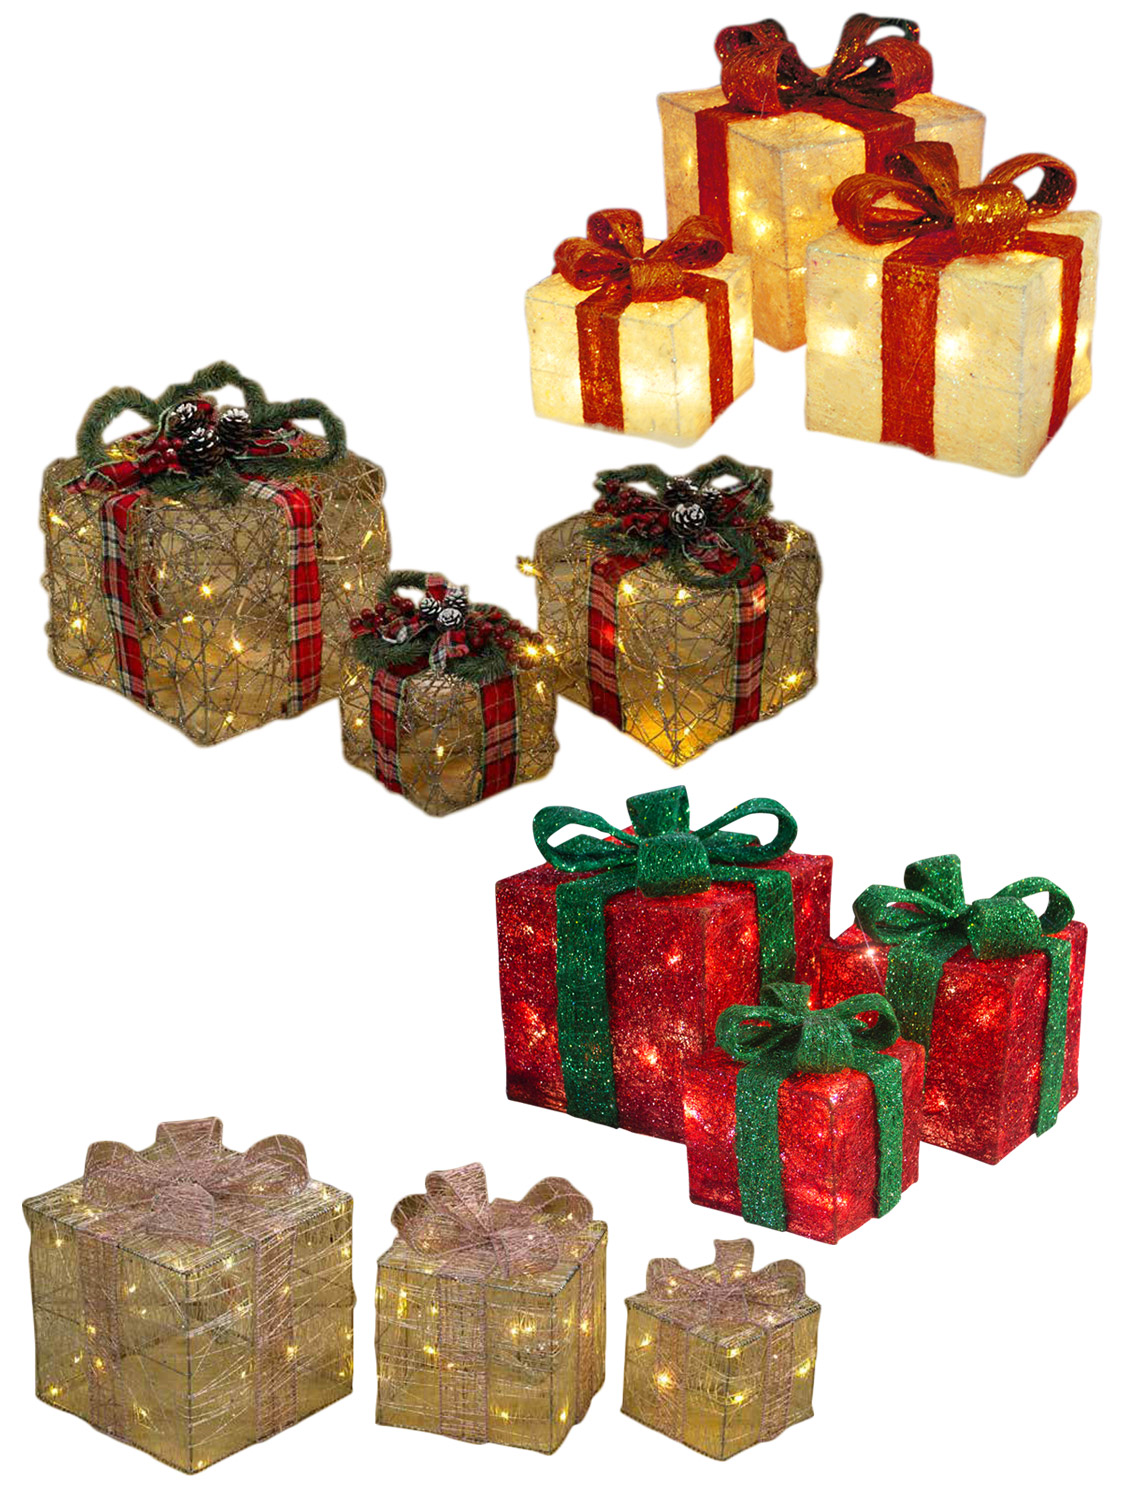 brighten up your home this christmas with these gift box light decorations suitable for indoor use